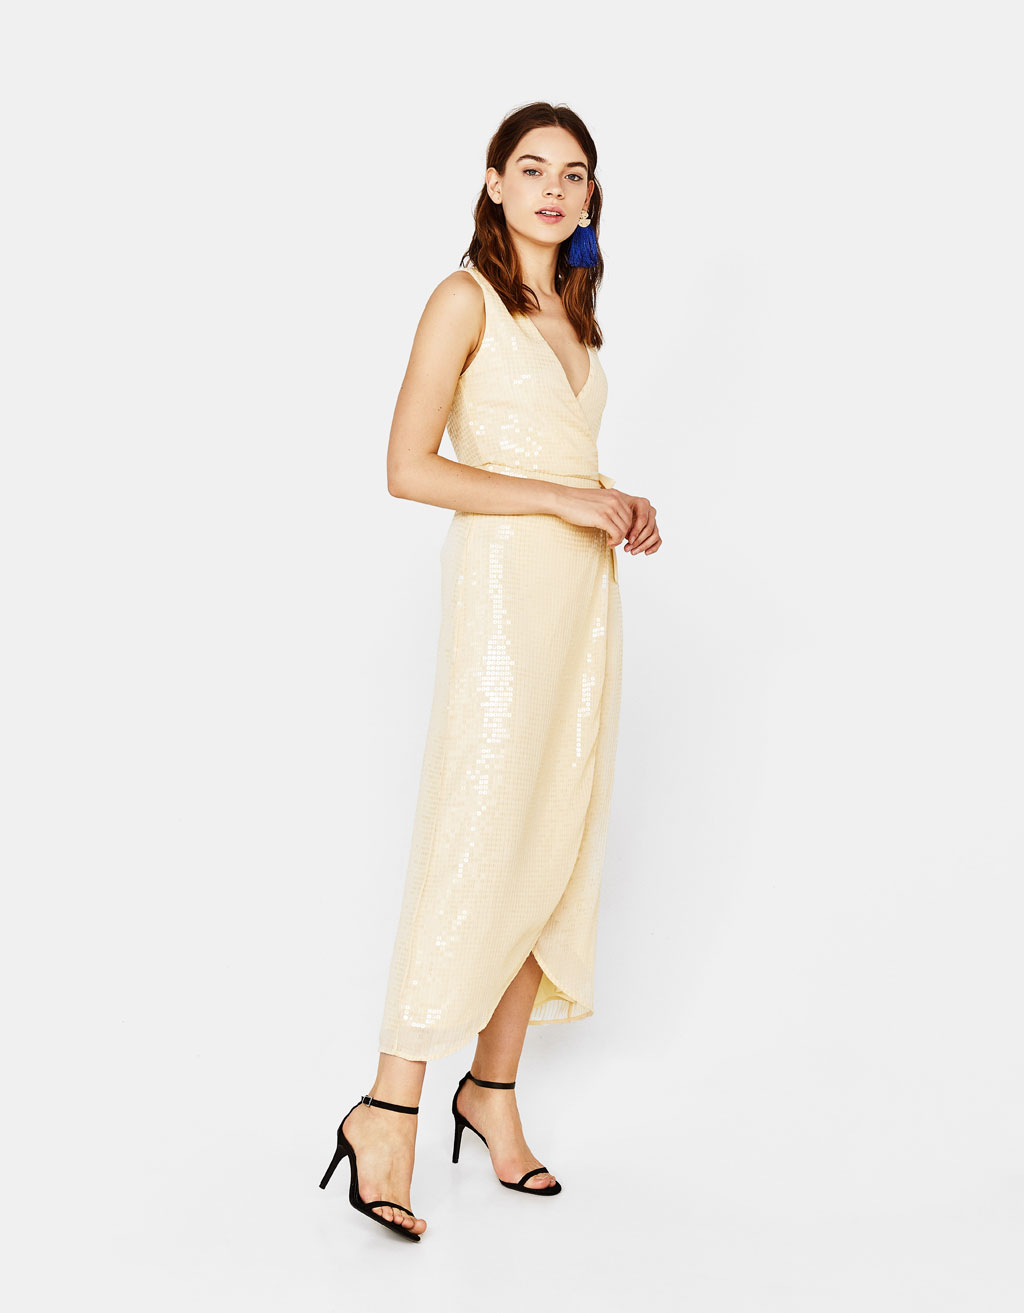 bershka high street wedding guest dresses